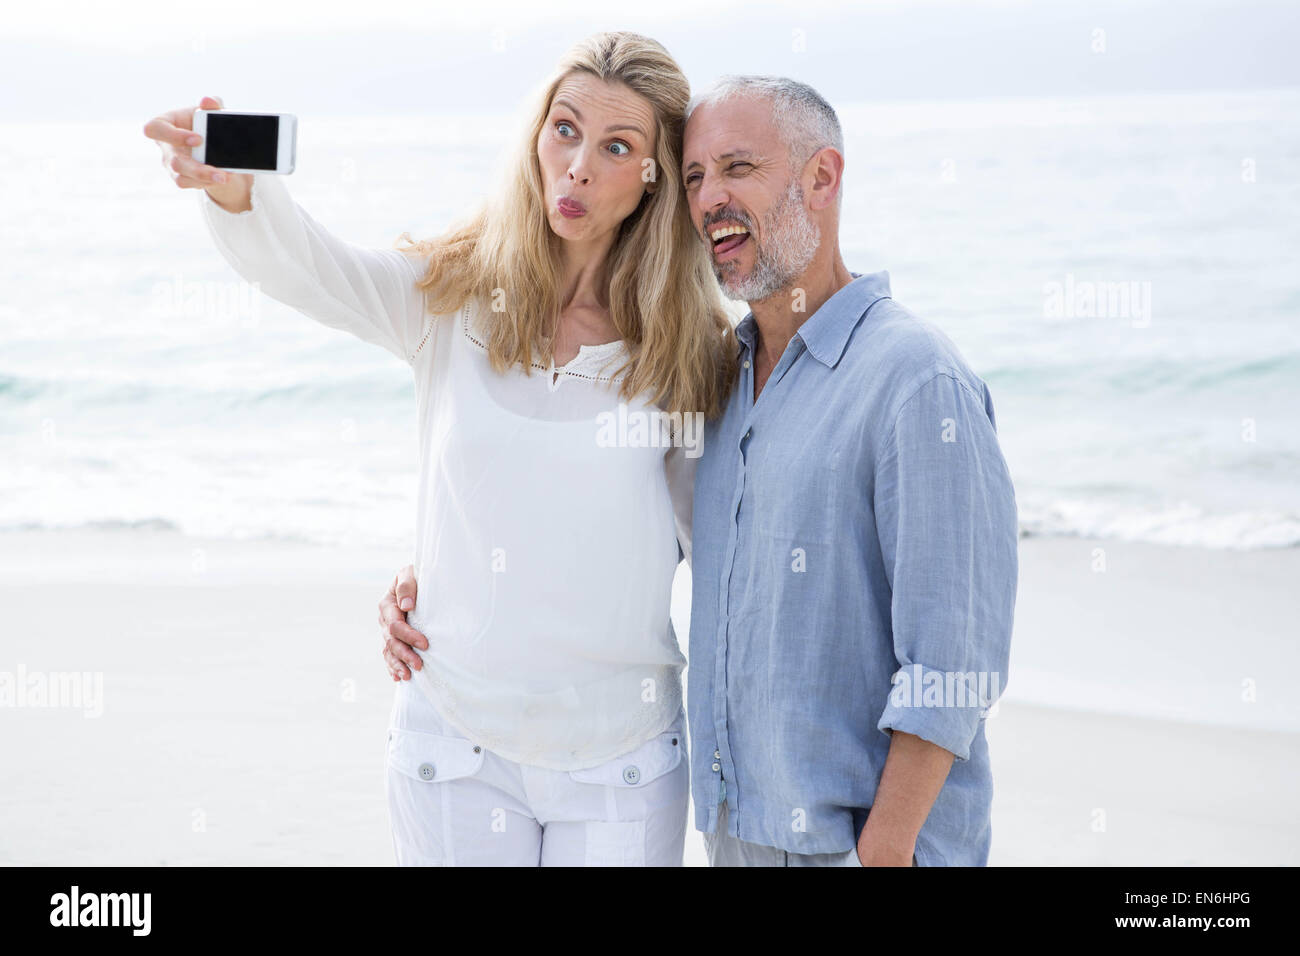 Happy couple taking selfie with mobile phone - Stock Image